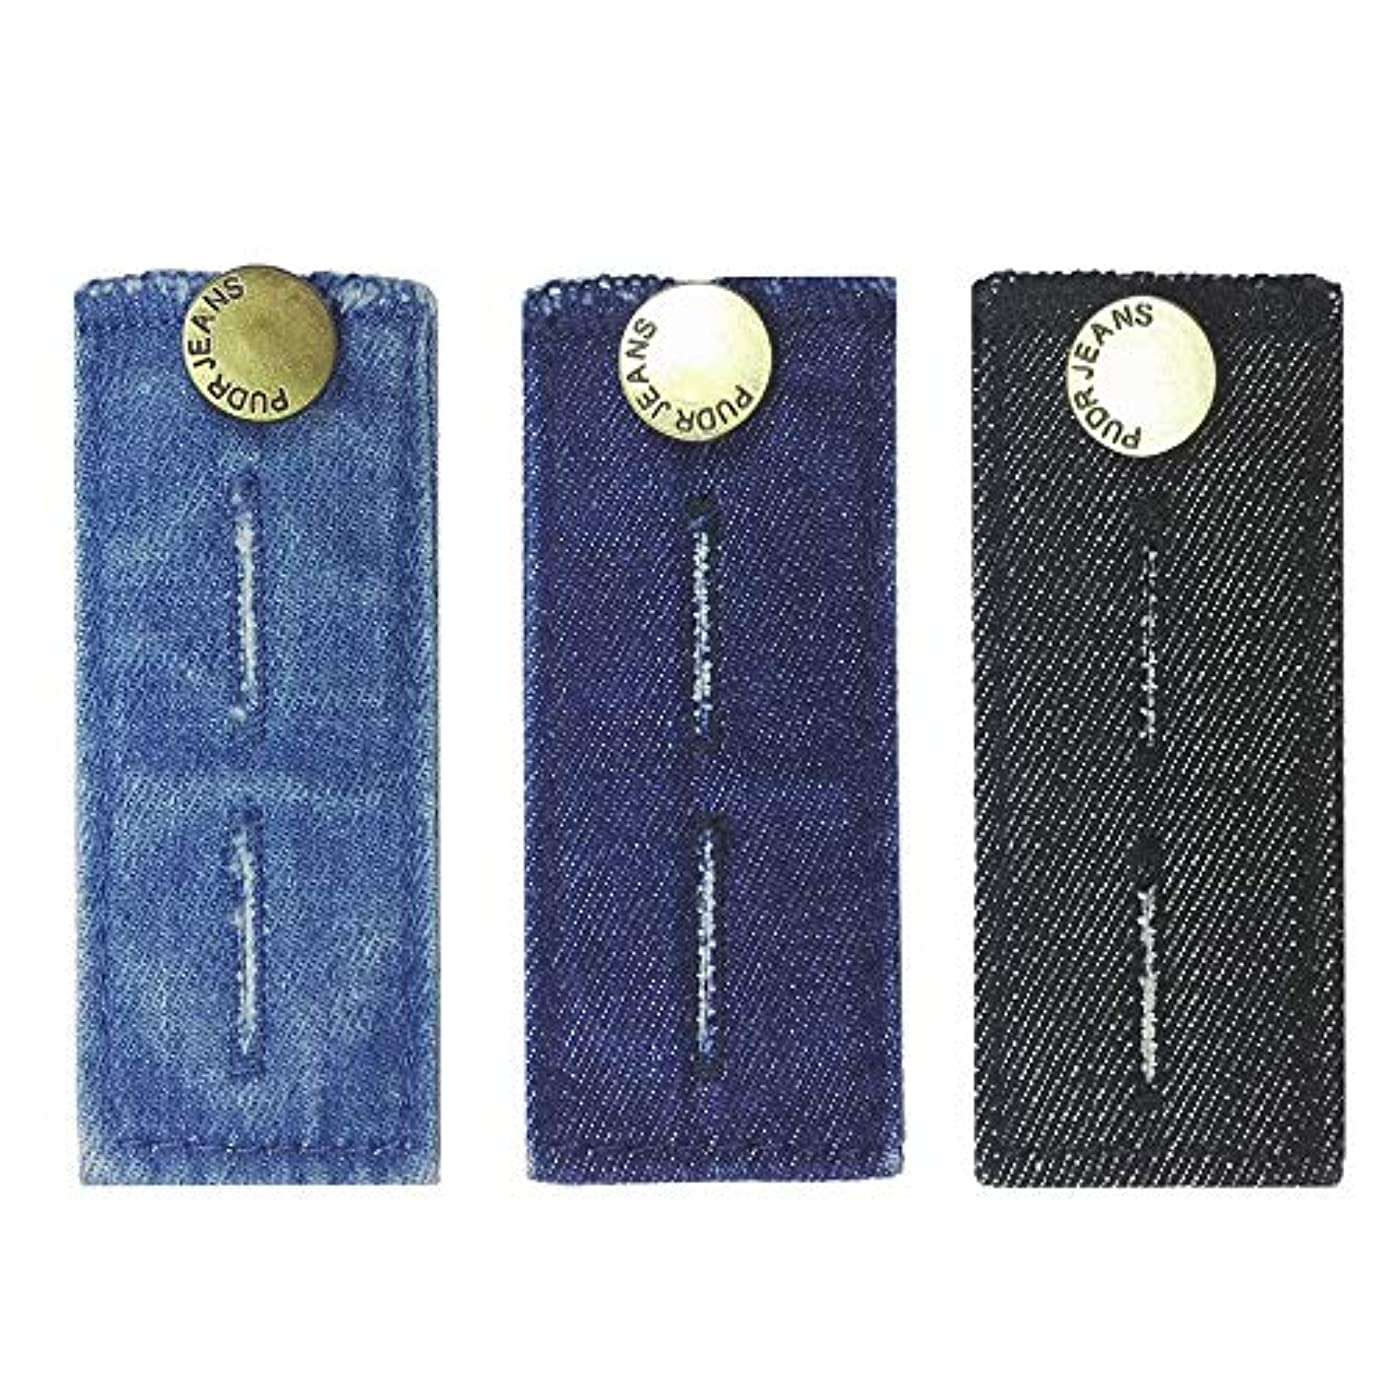 """LZLER Denim Waist Extenders for Men and Women, Easy Fit Buttons for Jeans Trousers with Metal Button, Add 1/2"""" to 2"""" Extra Space, Set of 3 Black, Blue and Dark Blue"""